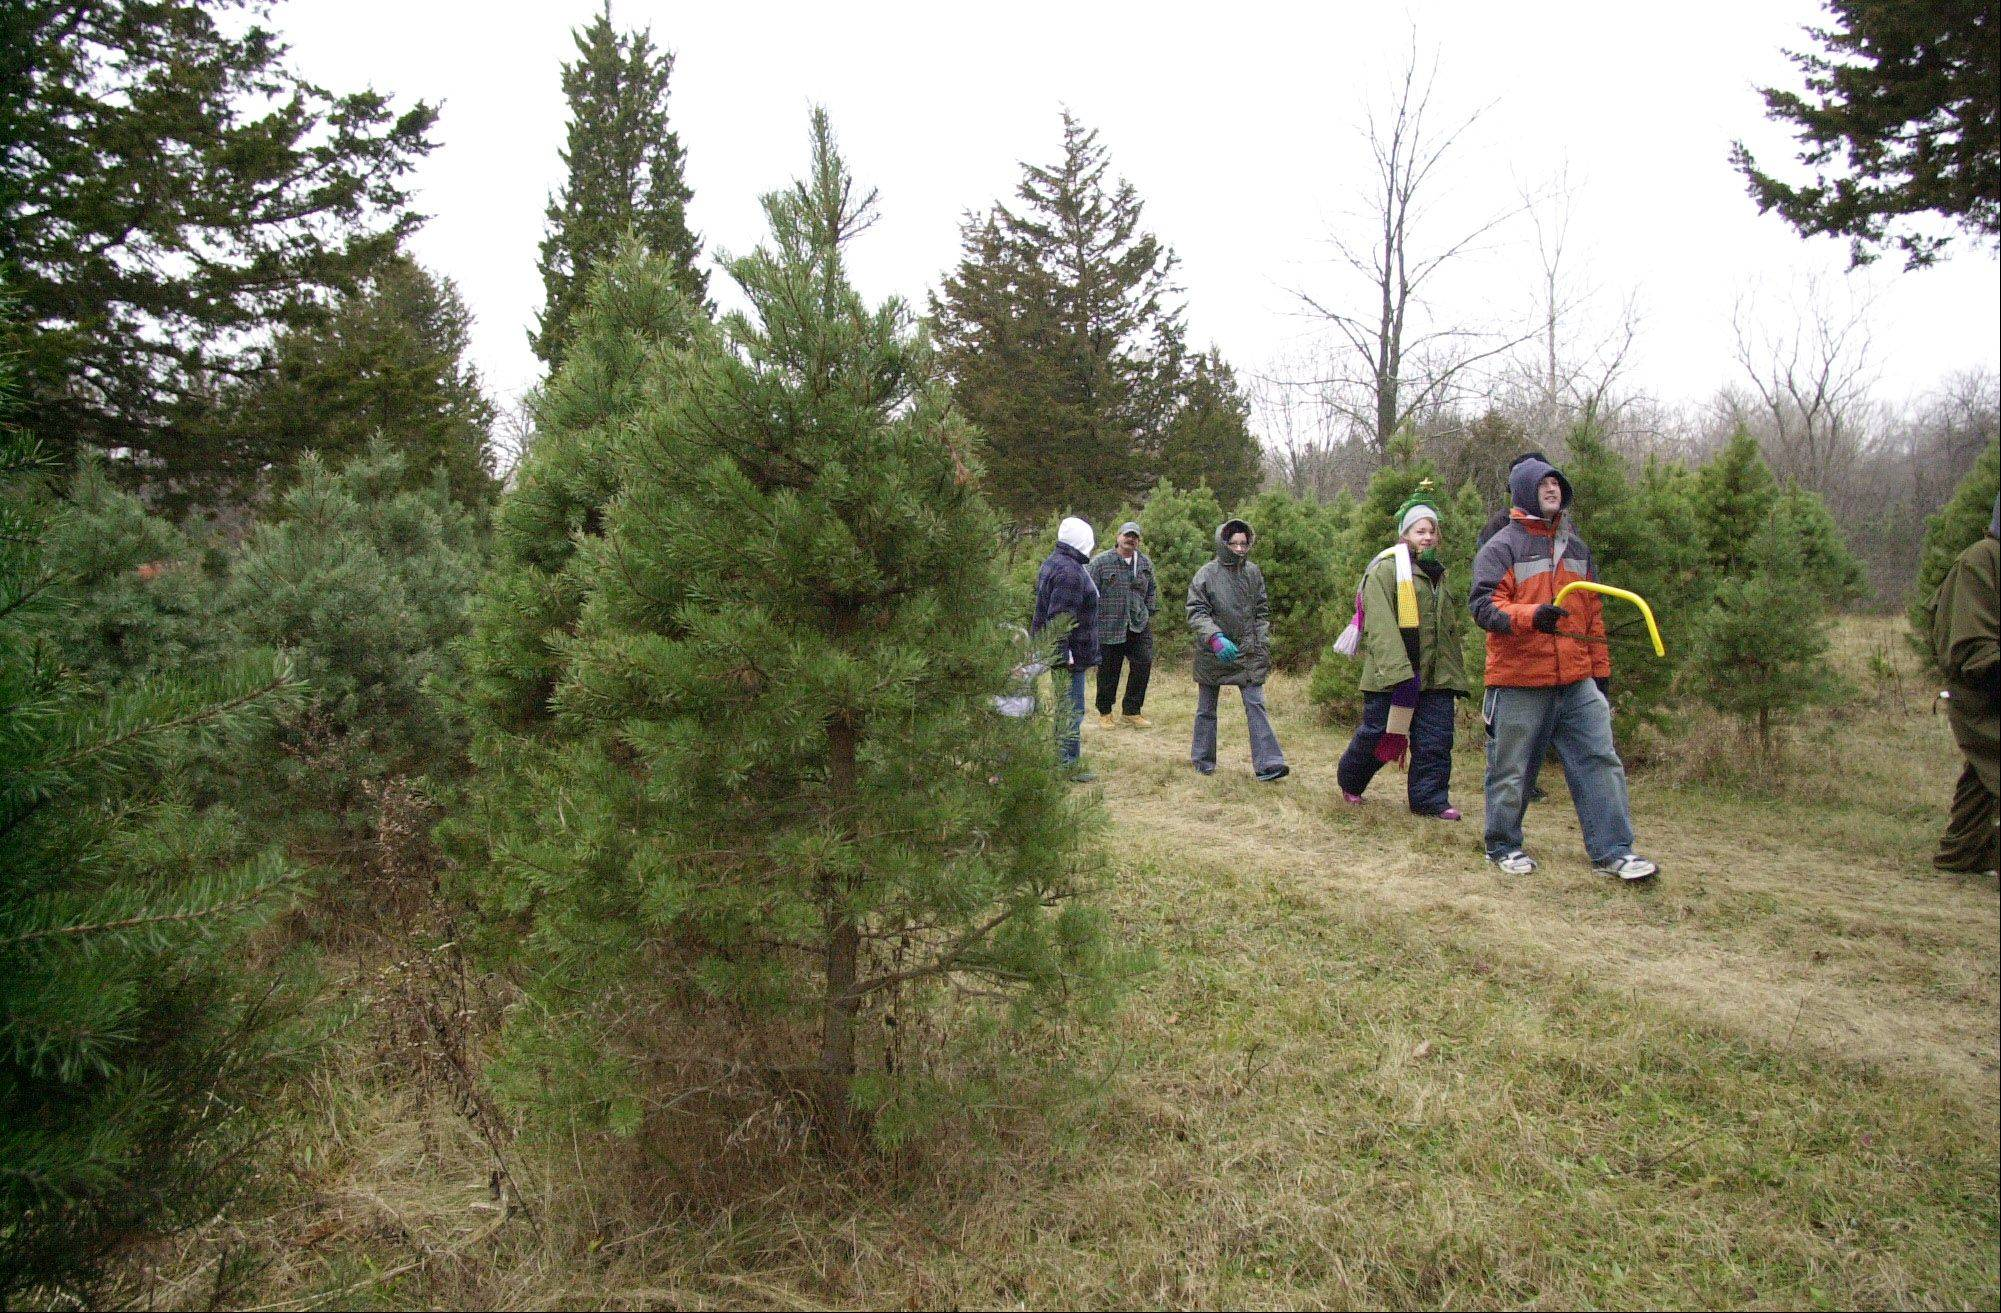 Christmas tree hunters head out with saws in hand to find the perfect tree.